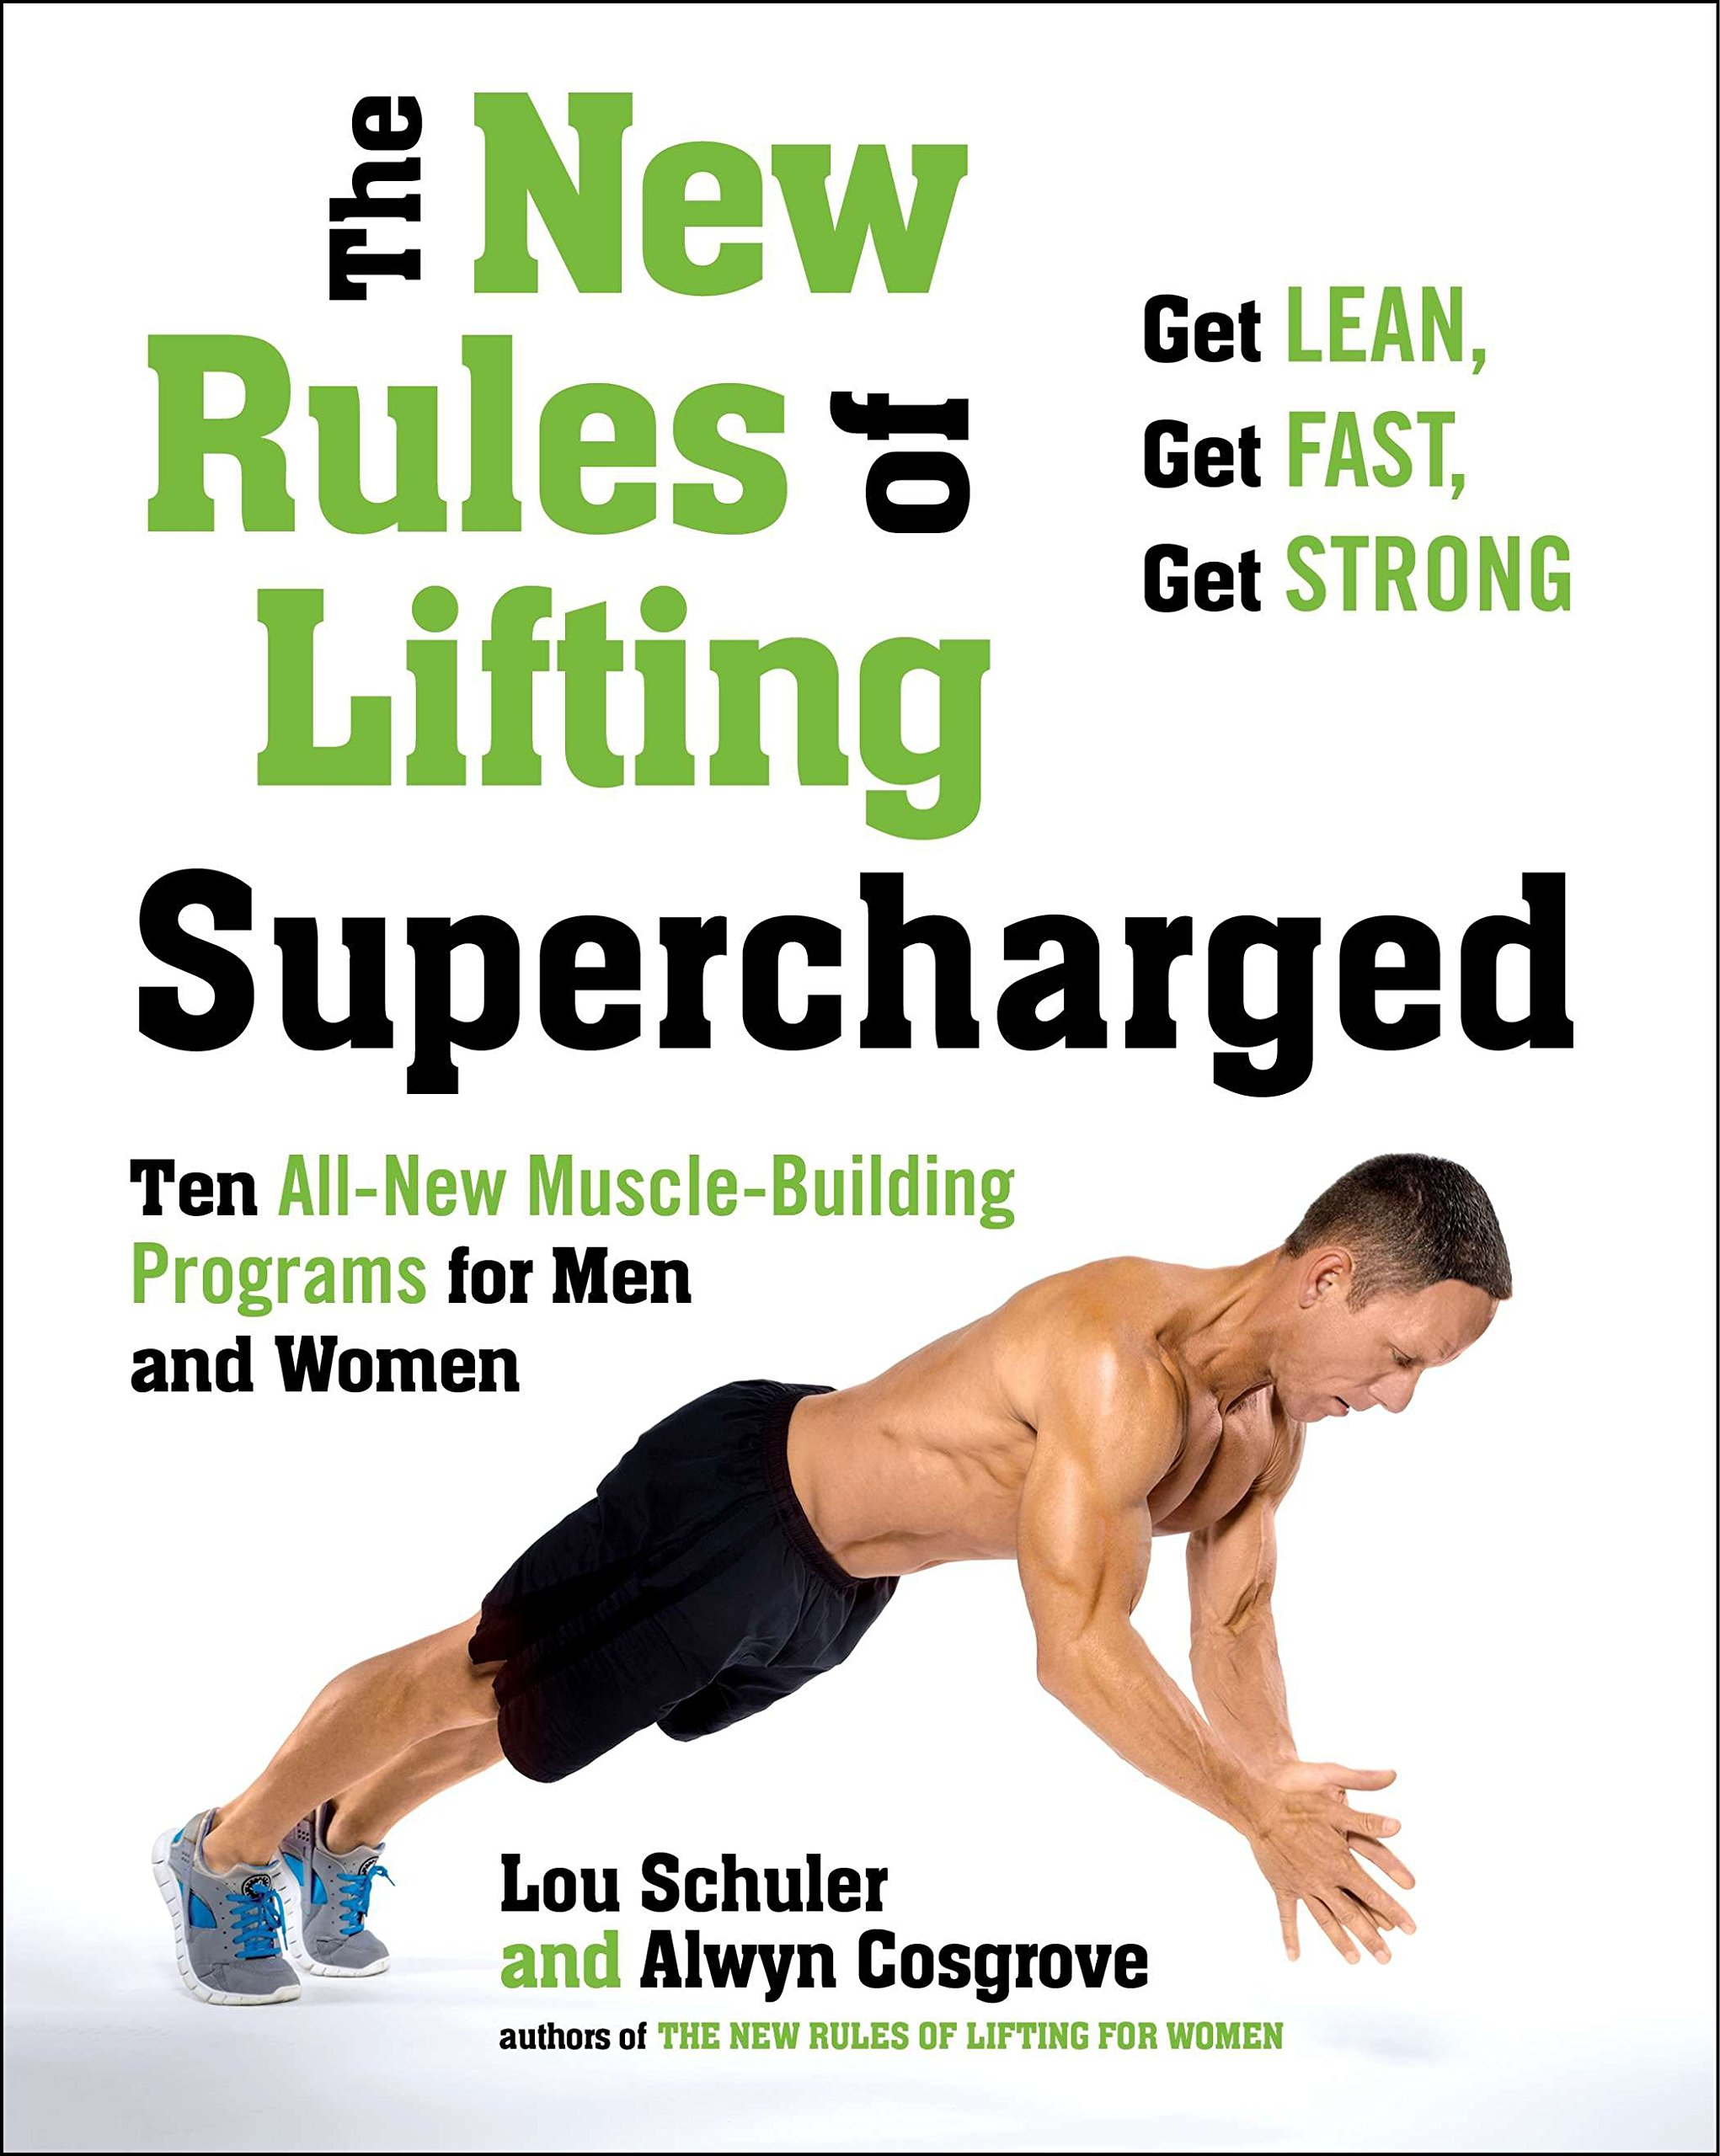 The New Rules of Lifting Supercharged: Ten All-New Muscle-Building Programs for Men and Women